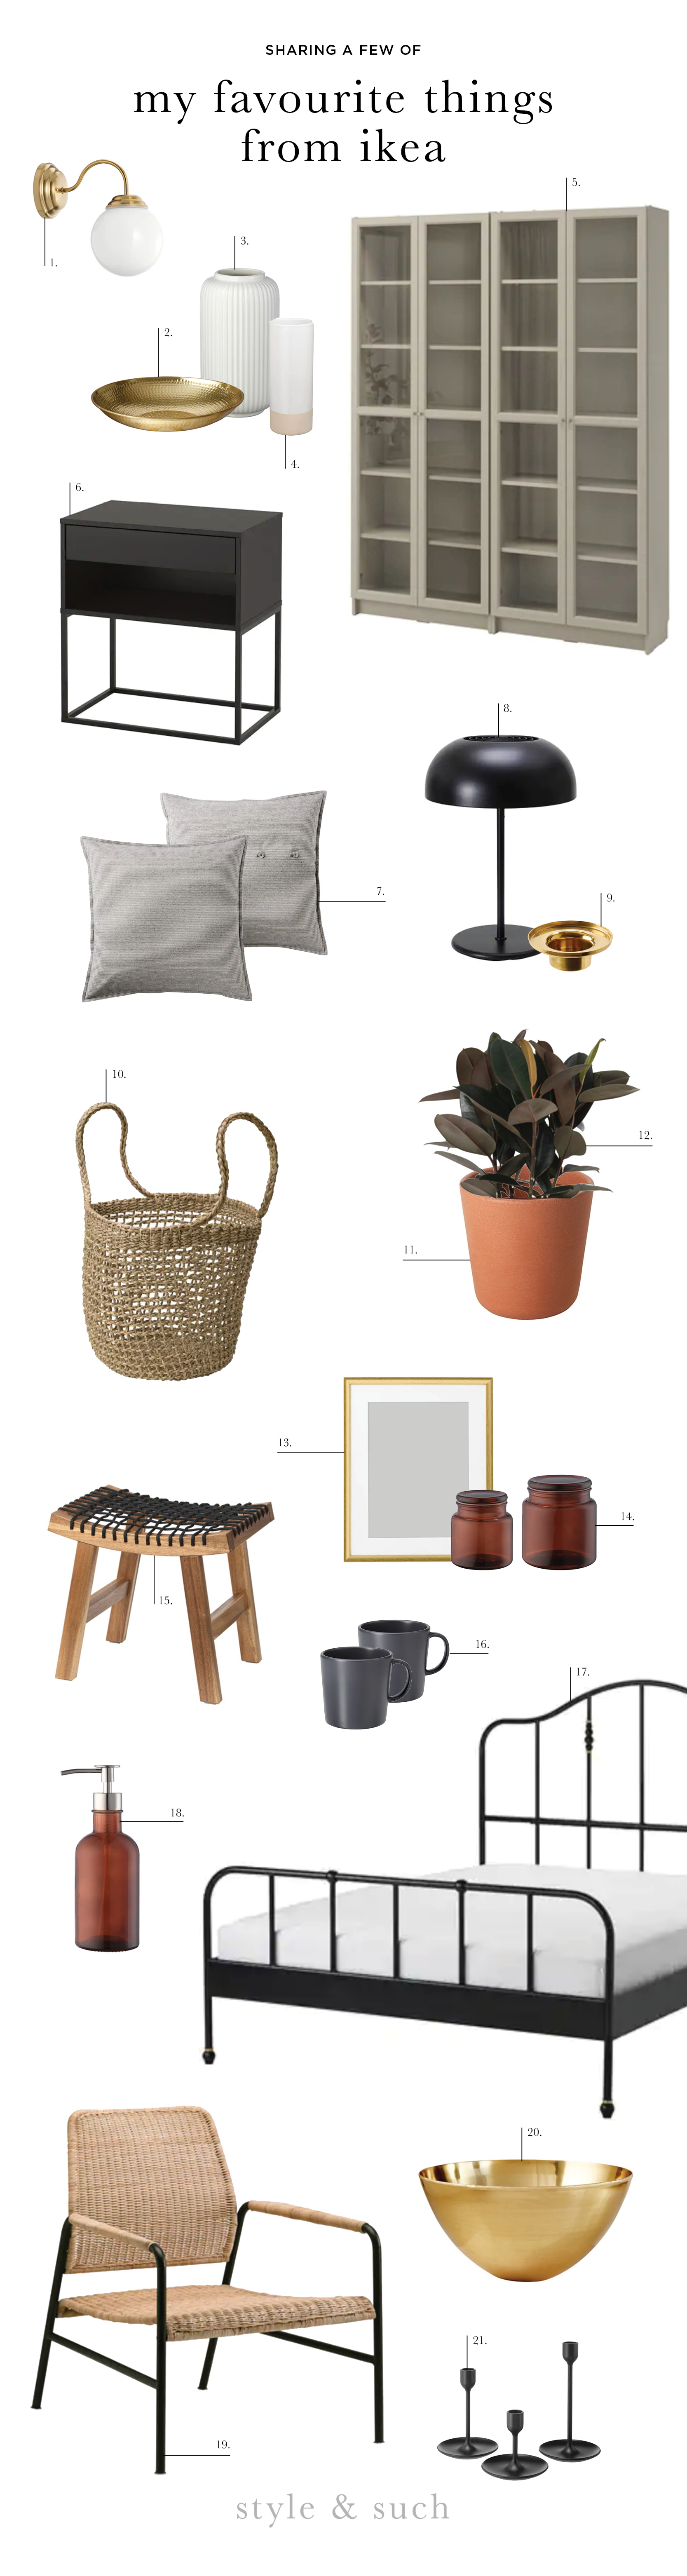 1.  Wall Sconce  | 2.  Hammered Gold Bowl  | 3.  White Textured Vase  | 4.  White and Natural Vase  | 5.  Billy Bookcase  | 6.  Nightstand  | 7.  Striped Cushion Cover  | 8.  Anthracite Table Lamp  | 9.  Tealight Holder  | 10.  Seagrass Basket  | 11.  Plant Pot |  12.  Rubber Plant  | 13.  Gold Frame  | 14.  Brown Glass Jar Set  | 15.  Woven Stool  | 16.  Mug  | 17.  Black Metal Bedframe  | 18.  Soap Dispenser  | 9.  Rattan Armchair  | 20.  Gold Decorative Bowl  | 21.  Candlestick Holders